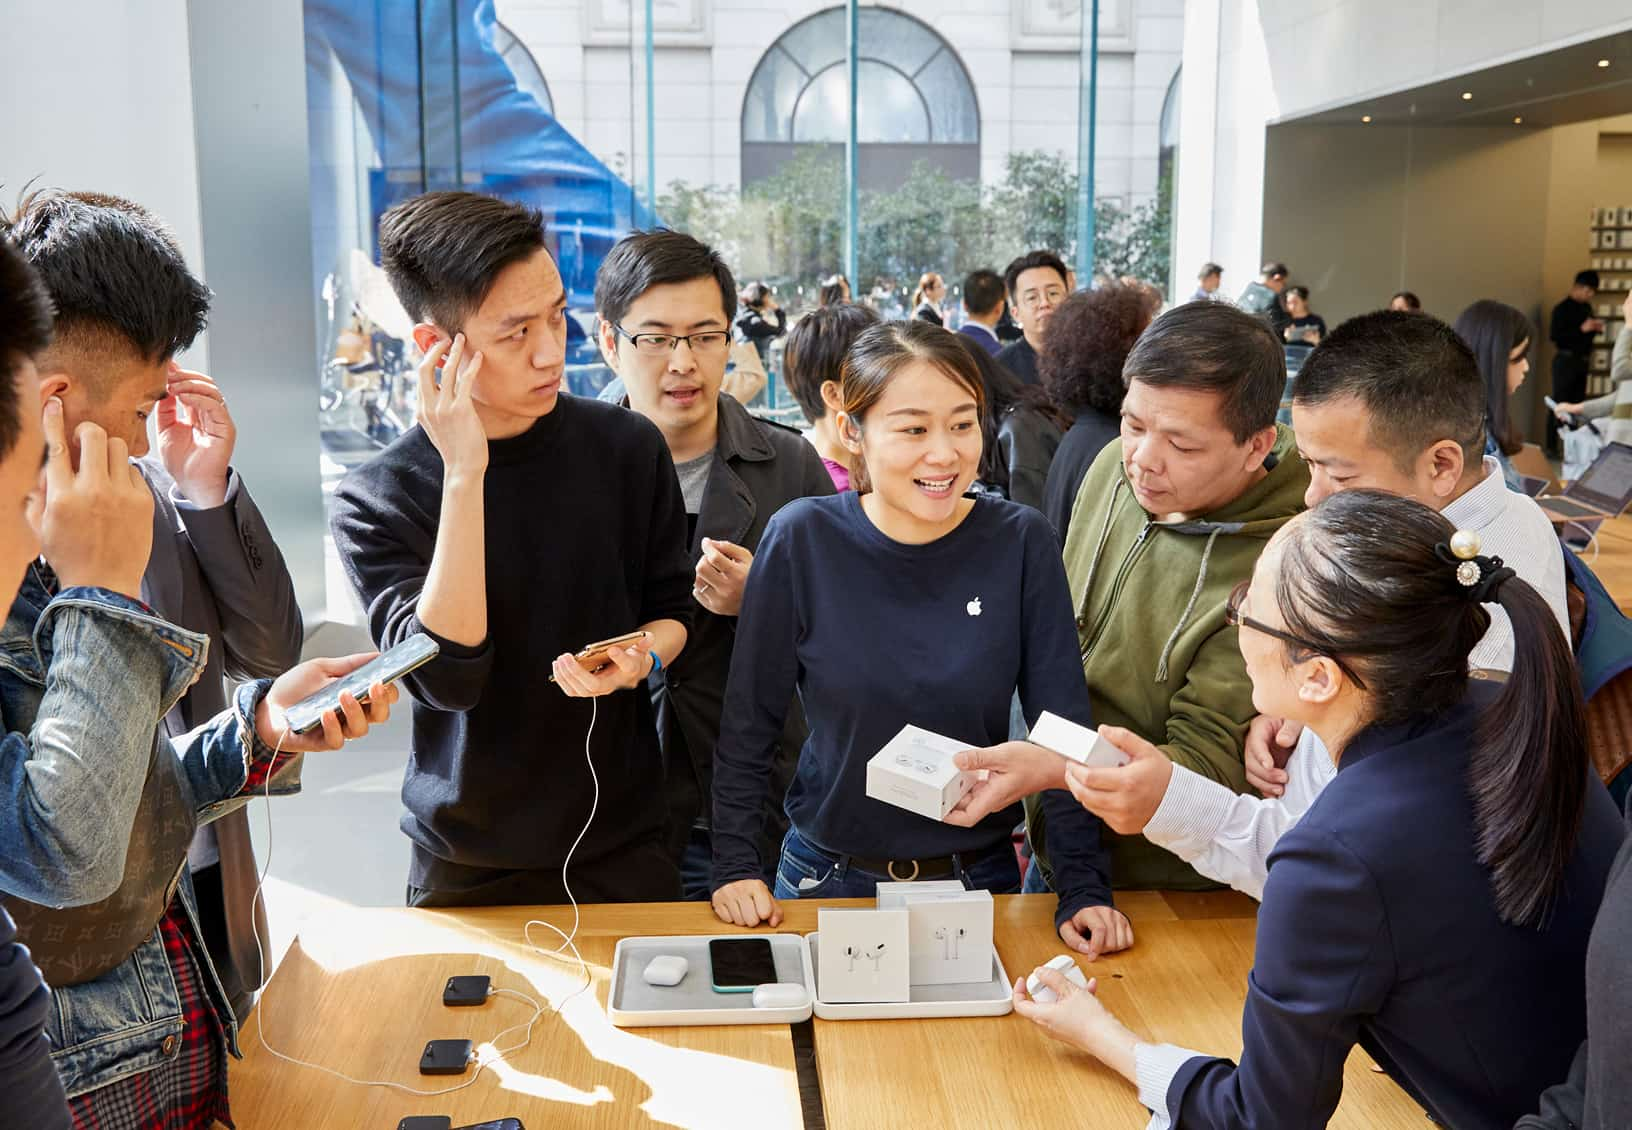 Apple Airpod Pro Launch Shanghai Guests With Team Member At Product Table 10302019